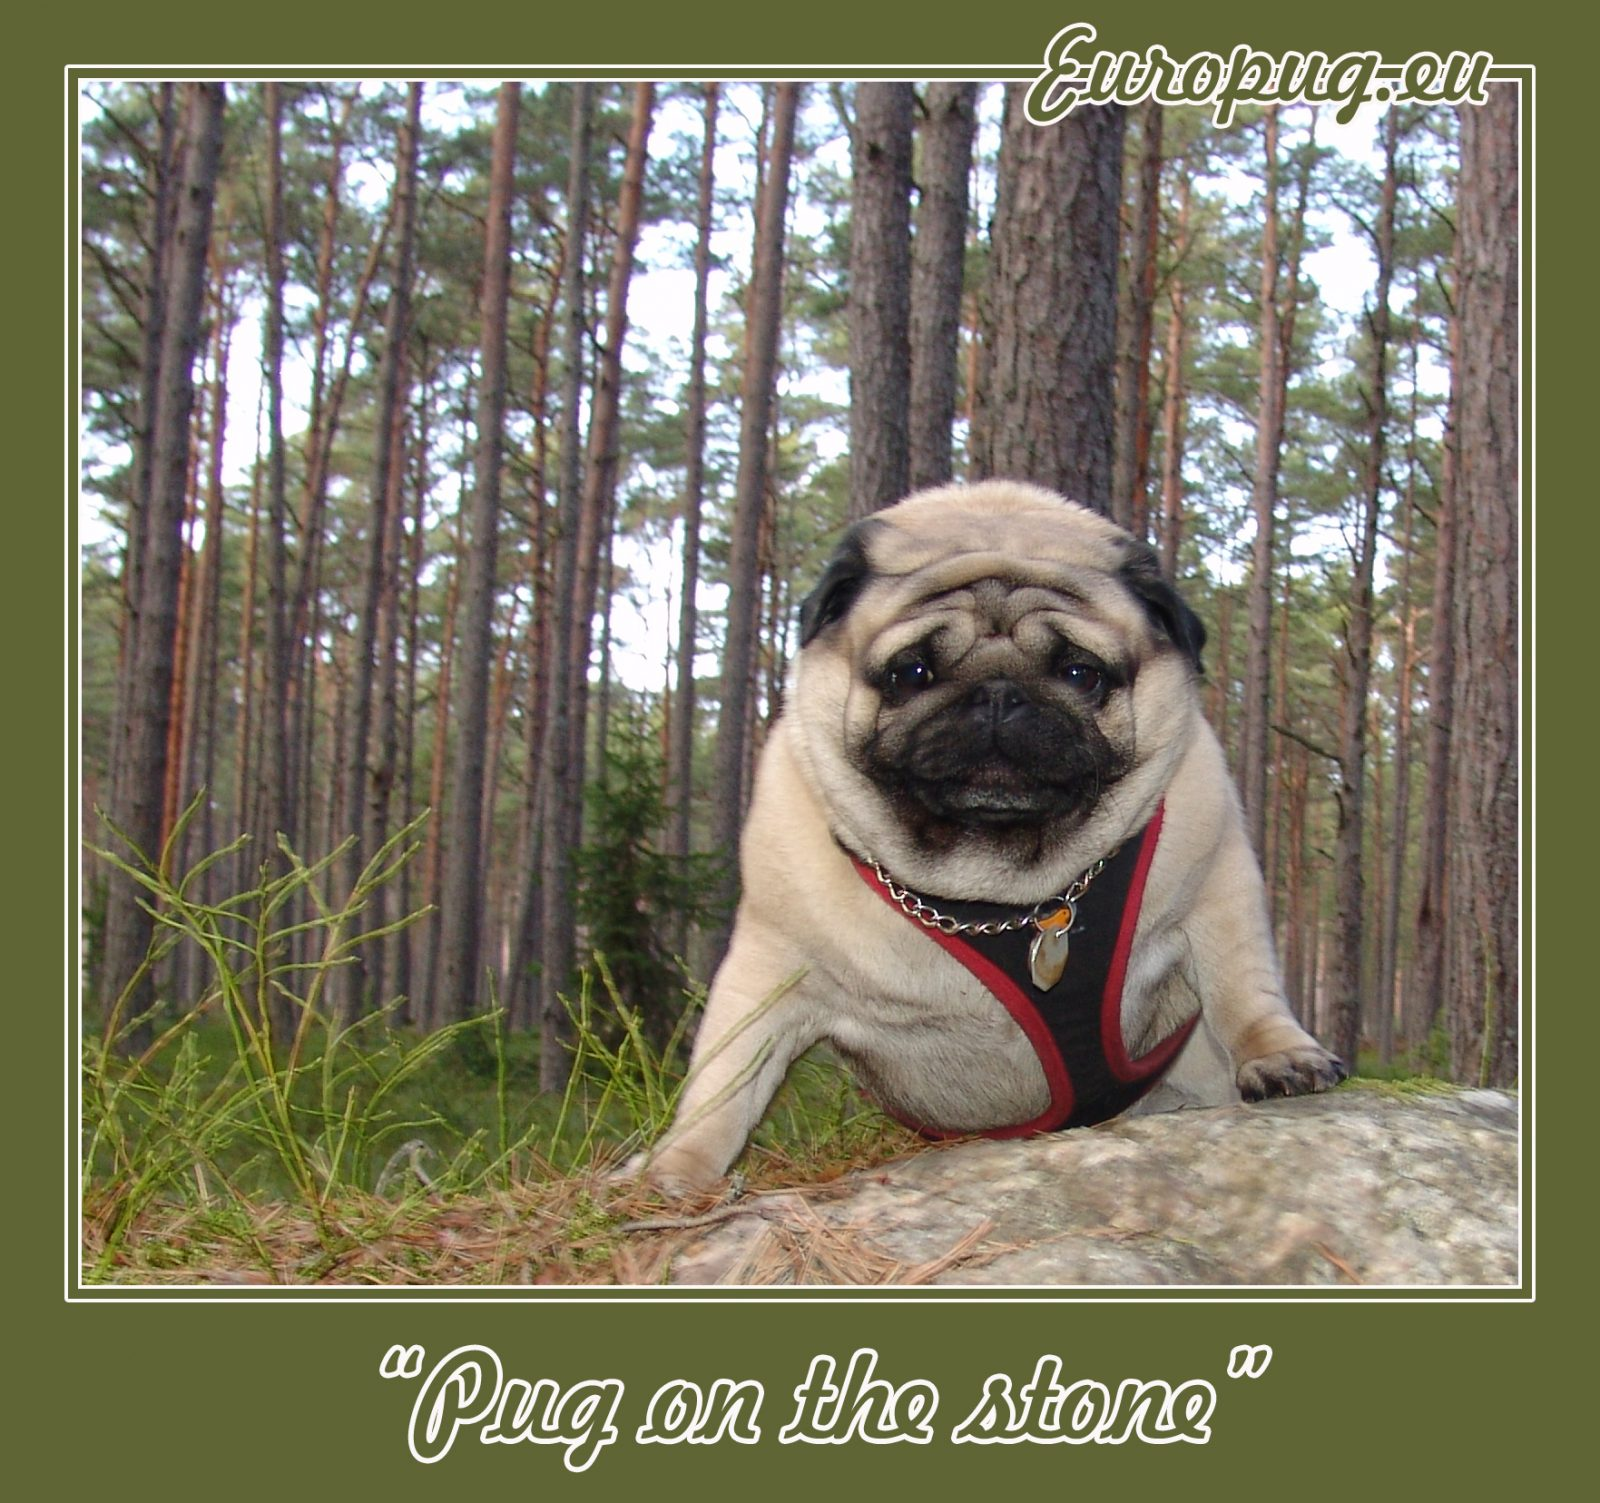 Pug on the stone